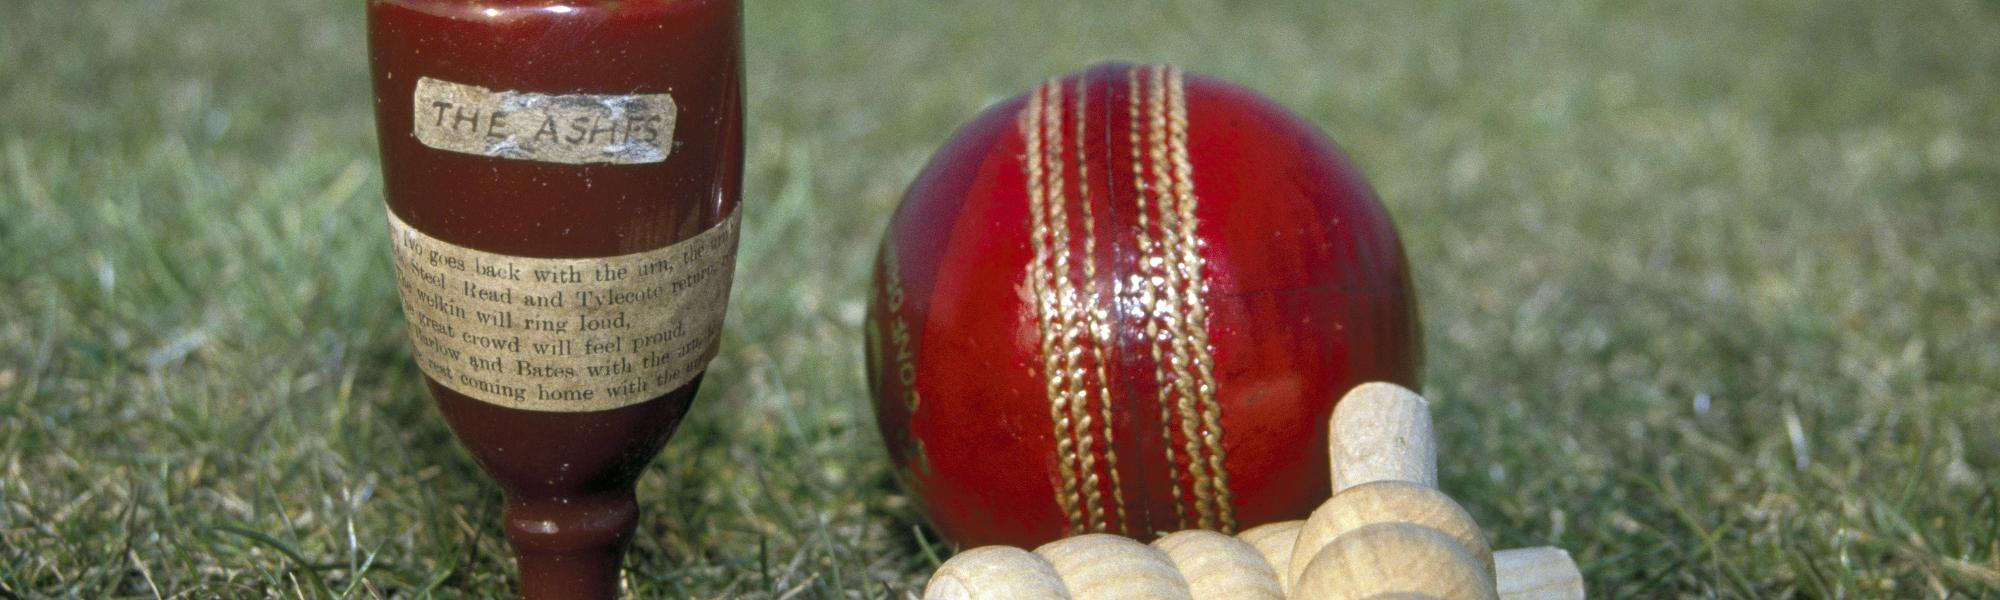 How Well Do You Know The Ashes